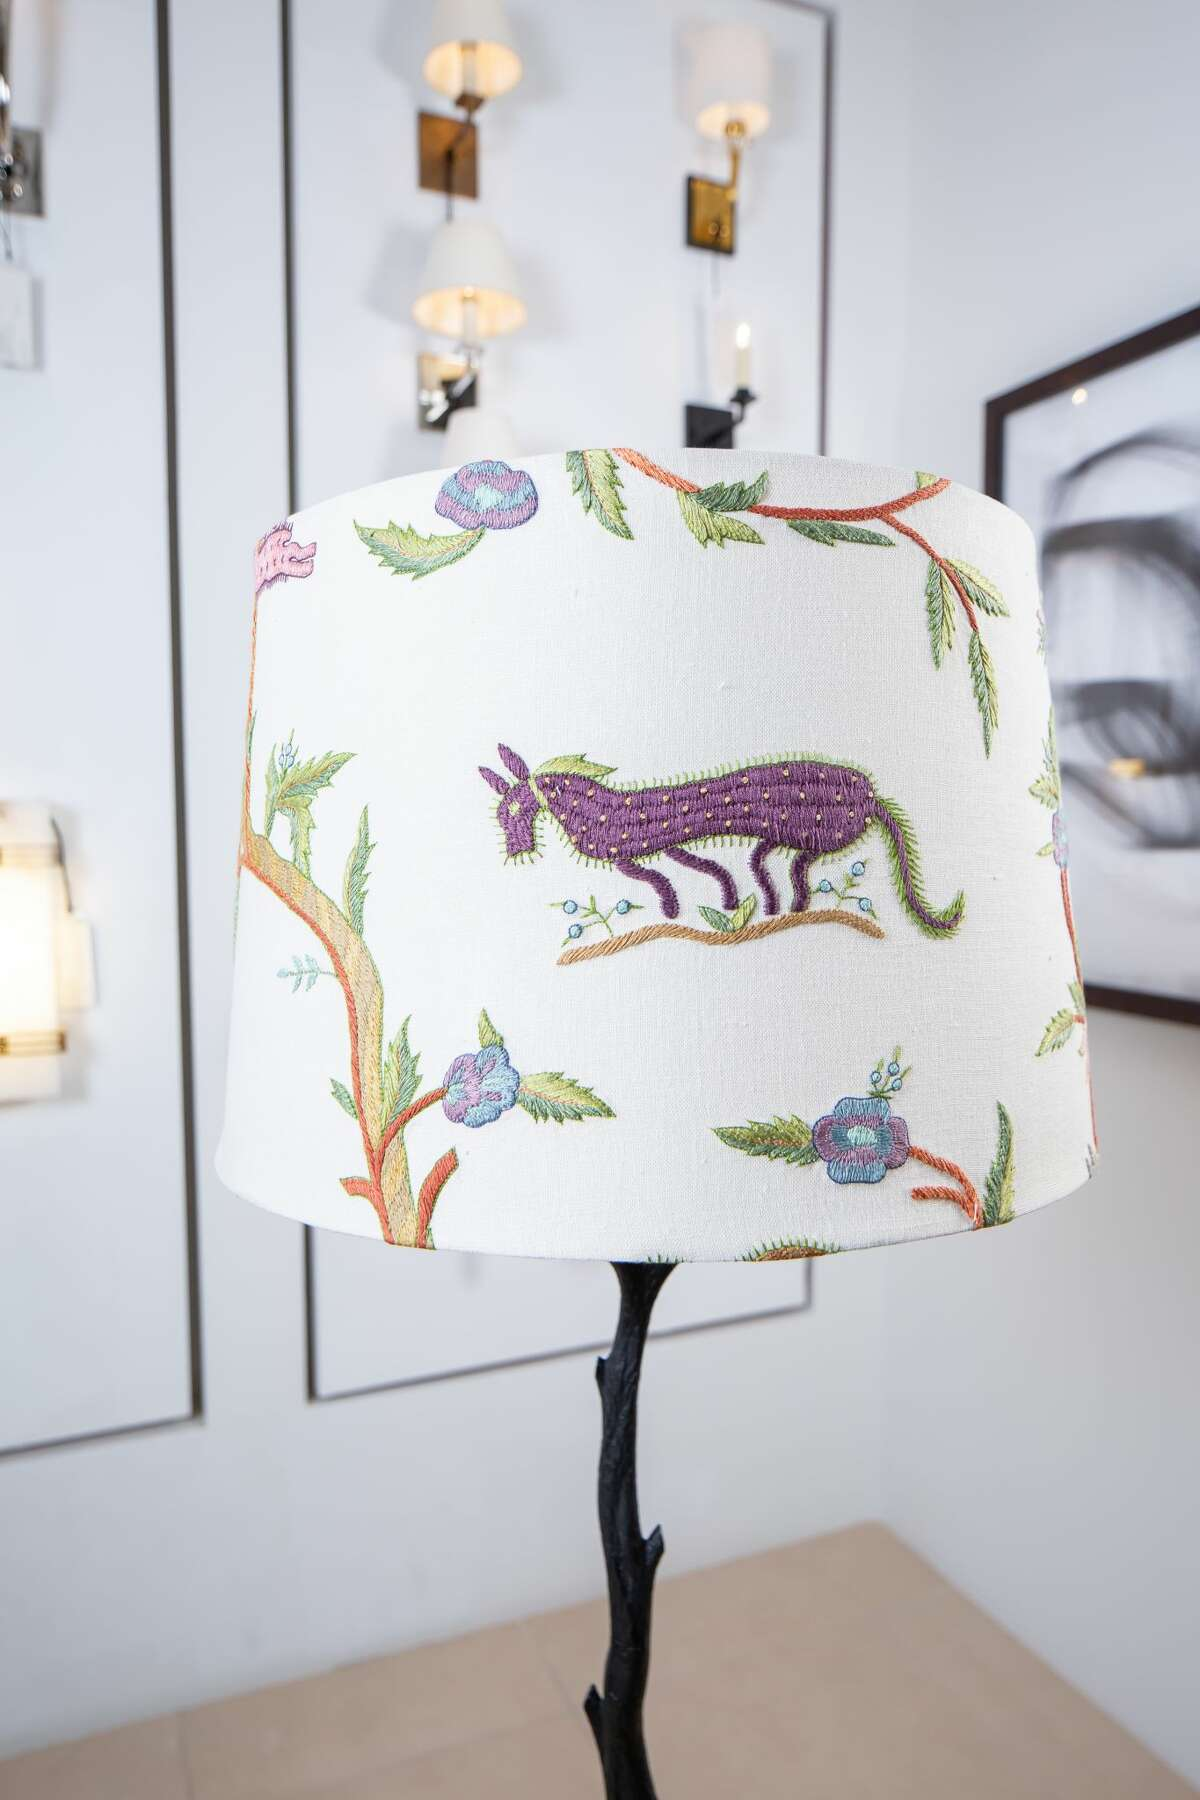 The lampshade has soft natural colors and shows tree branches, flowers and horses.